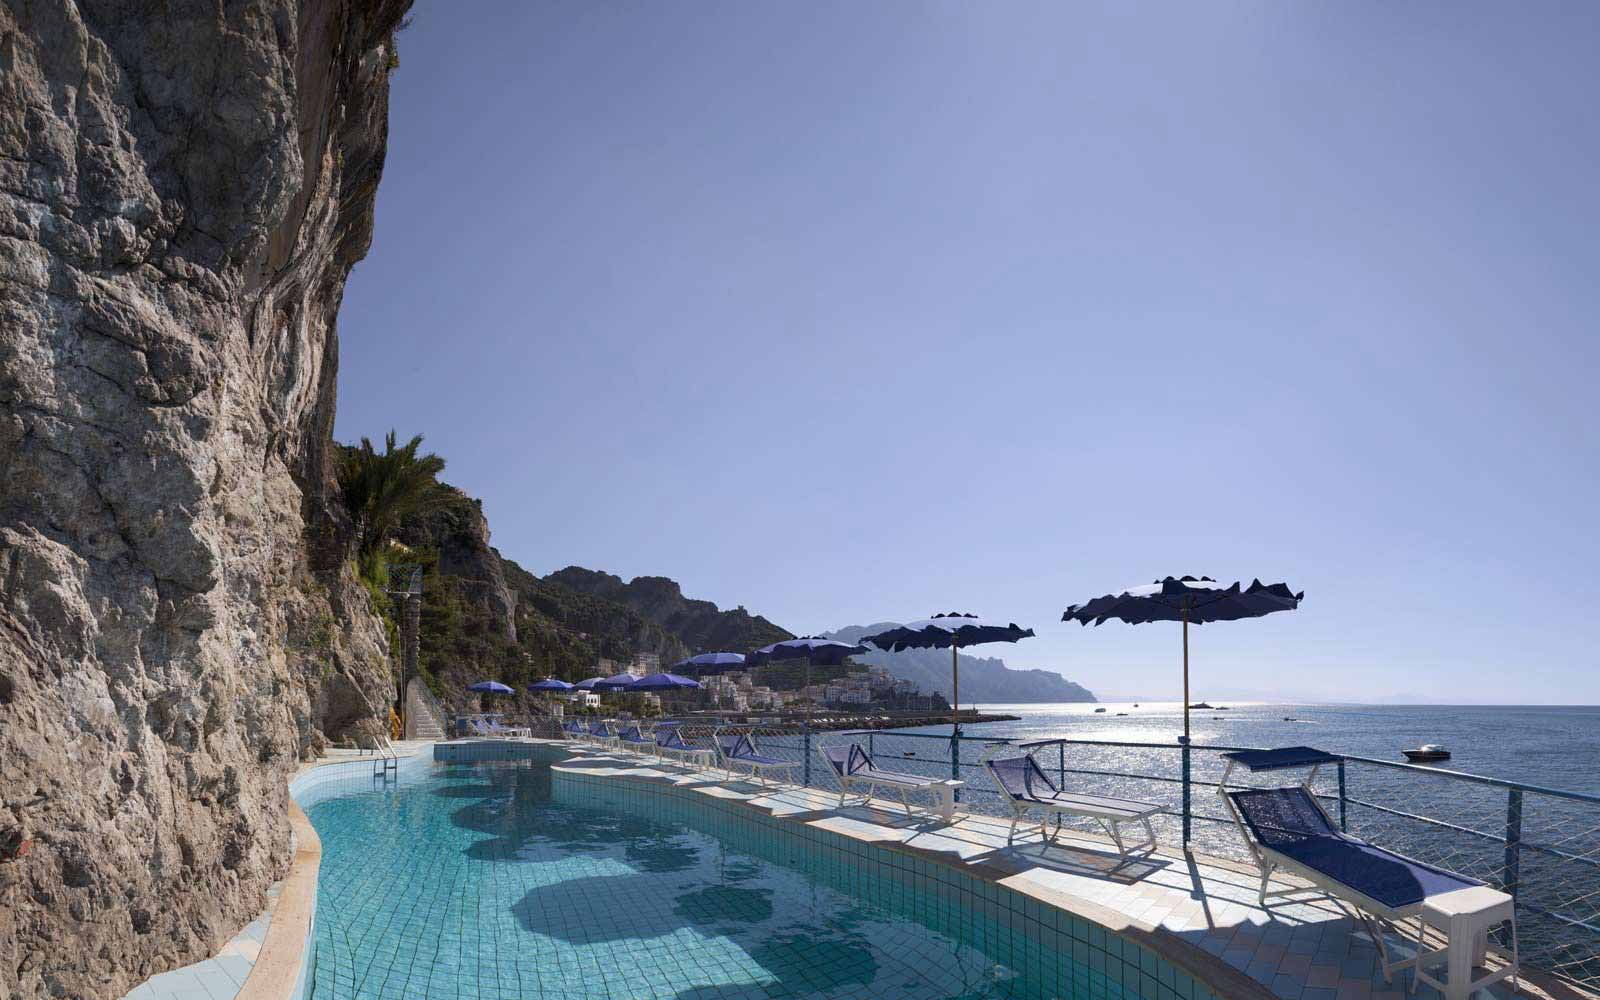 Views from the pool at Hotel Miramalfi